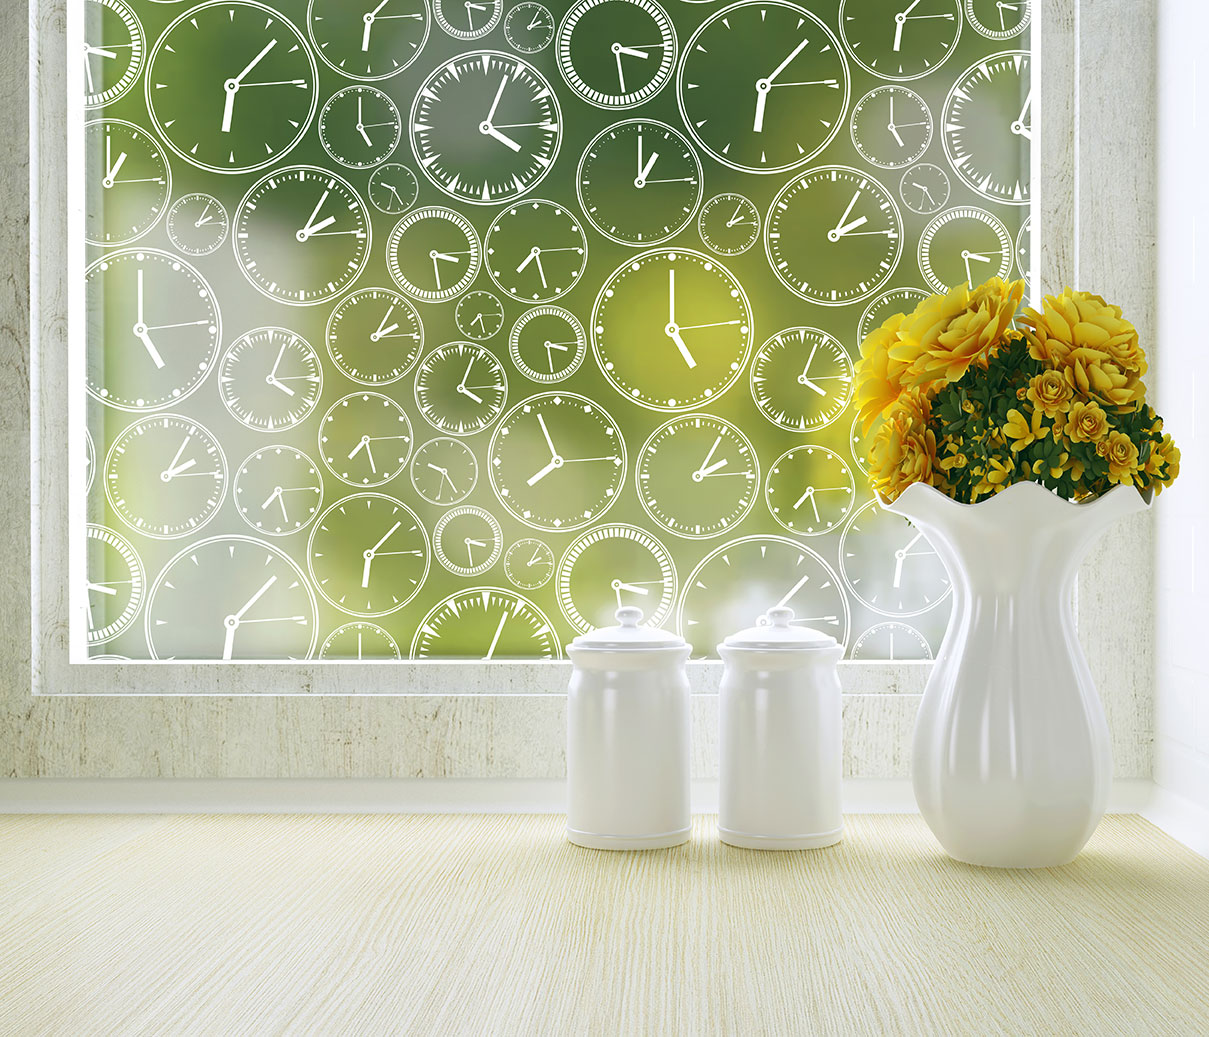 About Time privacy window film by Odhams Press